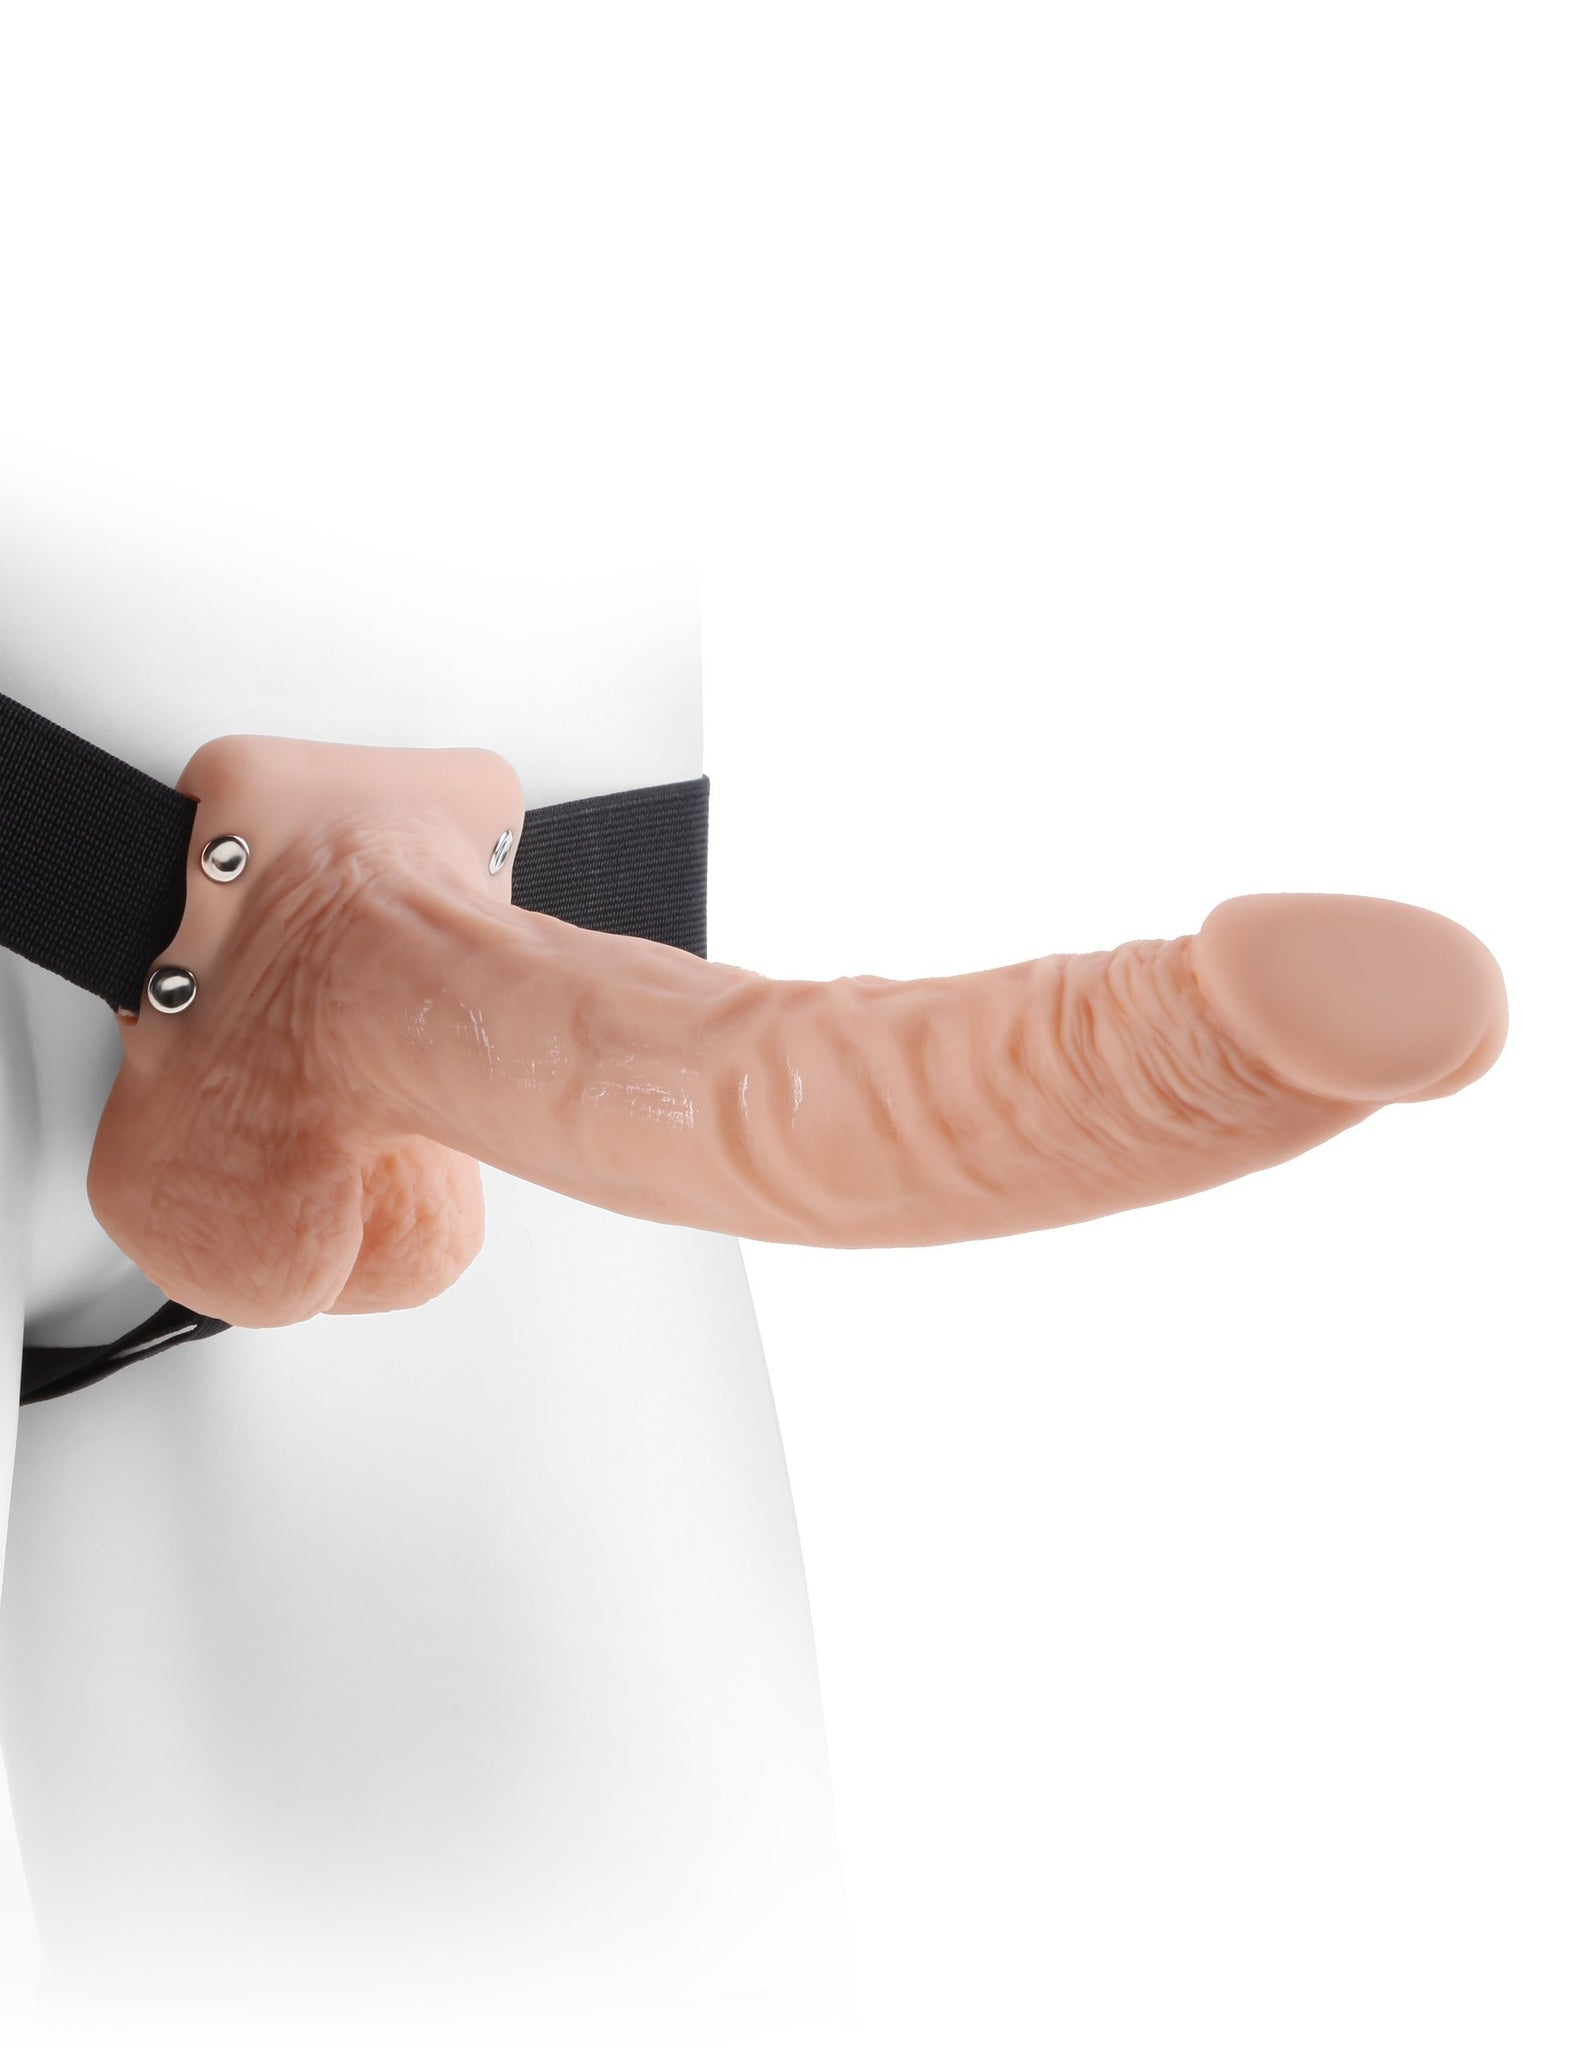 Fetish Fantasy Series 9 Inch Hollow Strap-On with Balls | Dildos, Anal Toys, Realistic Dildos, Sex Toys For Women, Sex Toys, Adult Toys | My Sex Shop